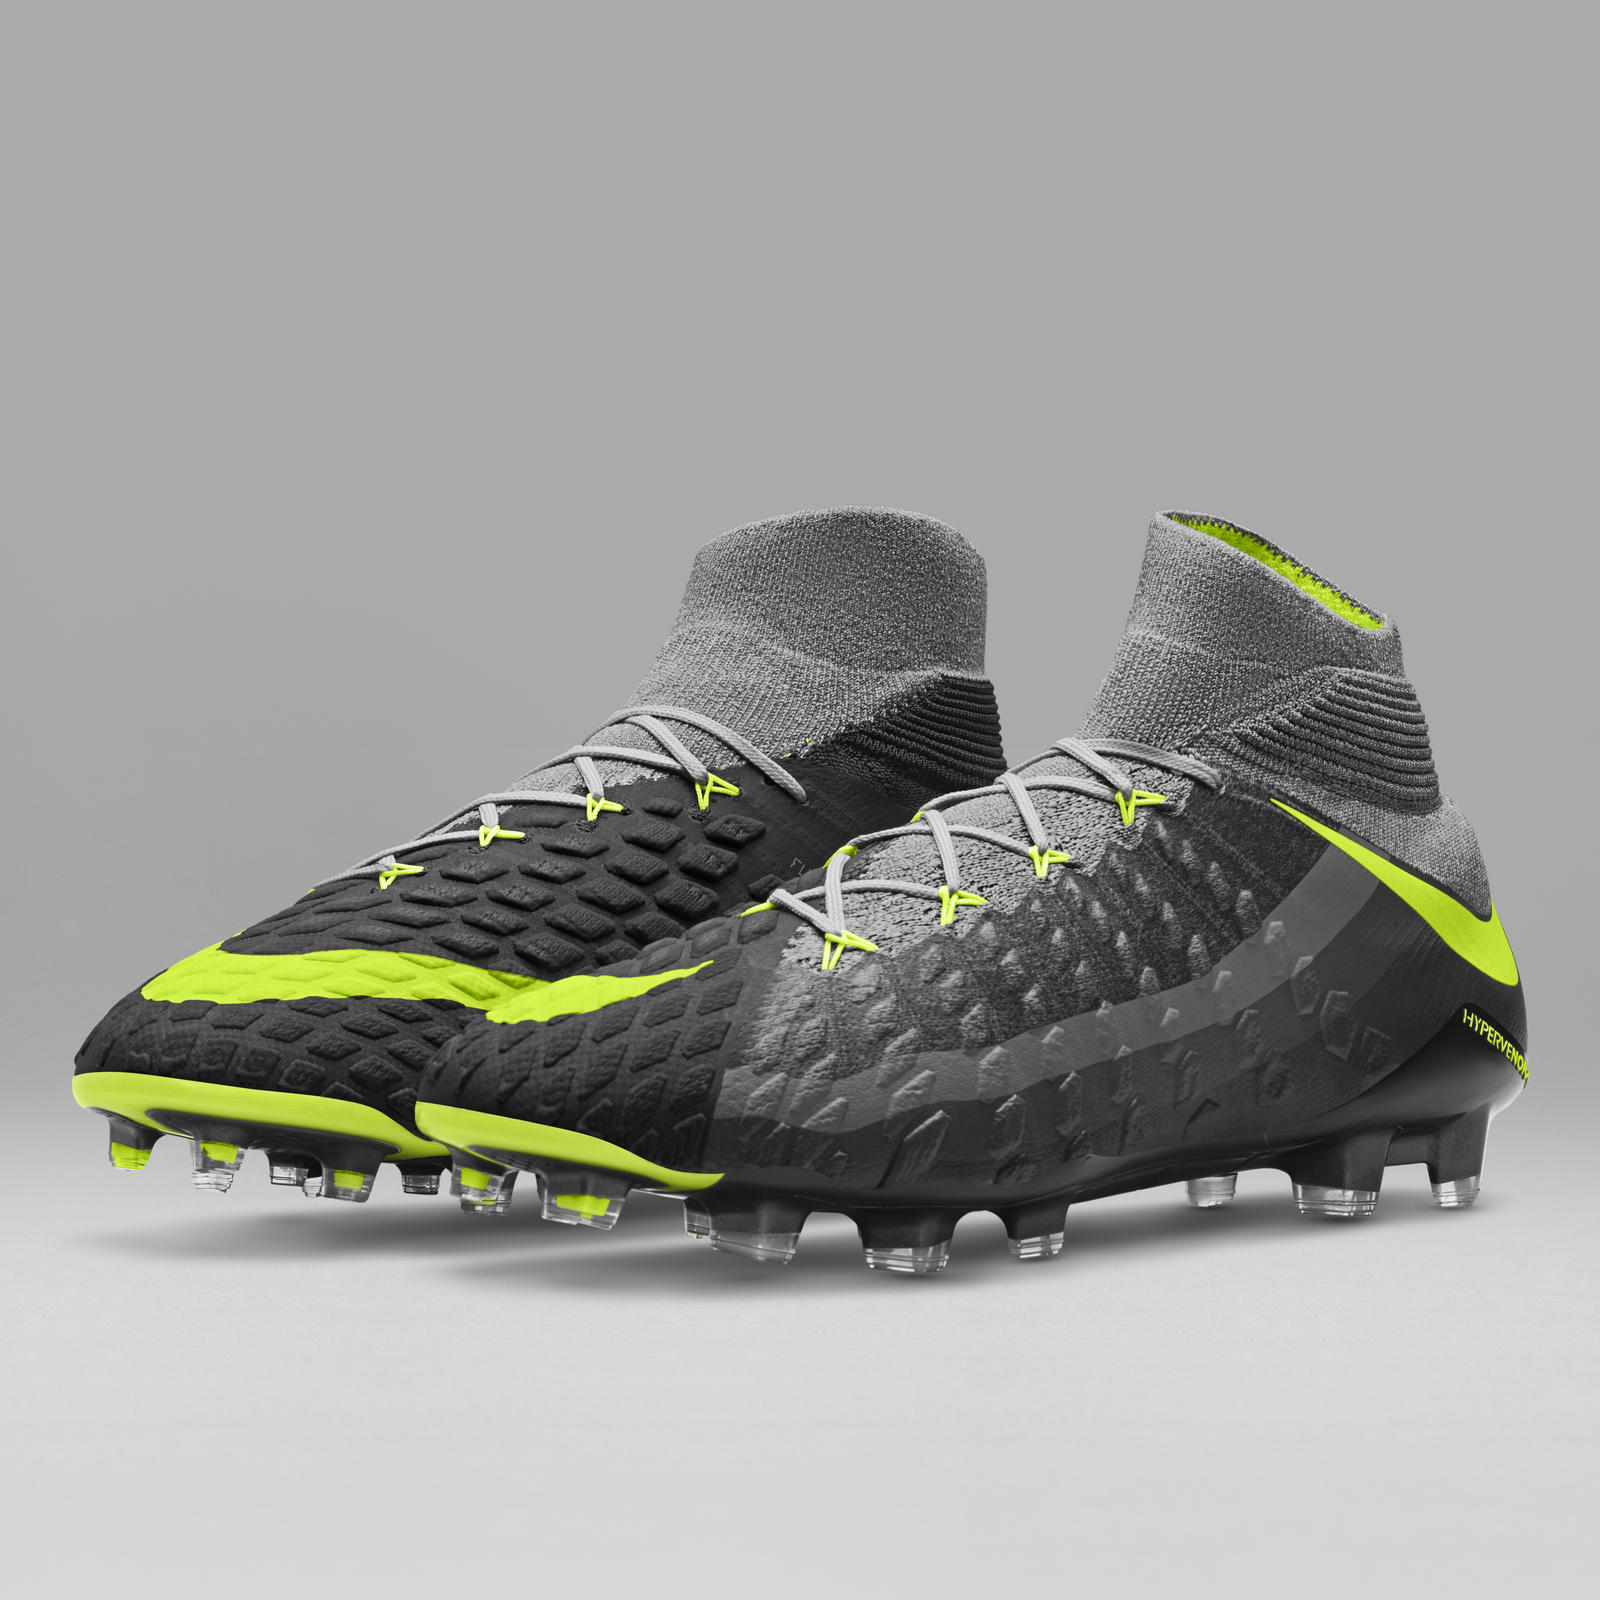 best service e8d84 71b4f NIKE FOOTBALL BOOTS INSPIRED BY AIR MAX ICONS 89. Hypervenom ...